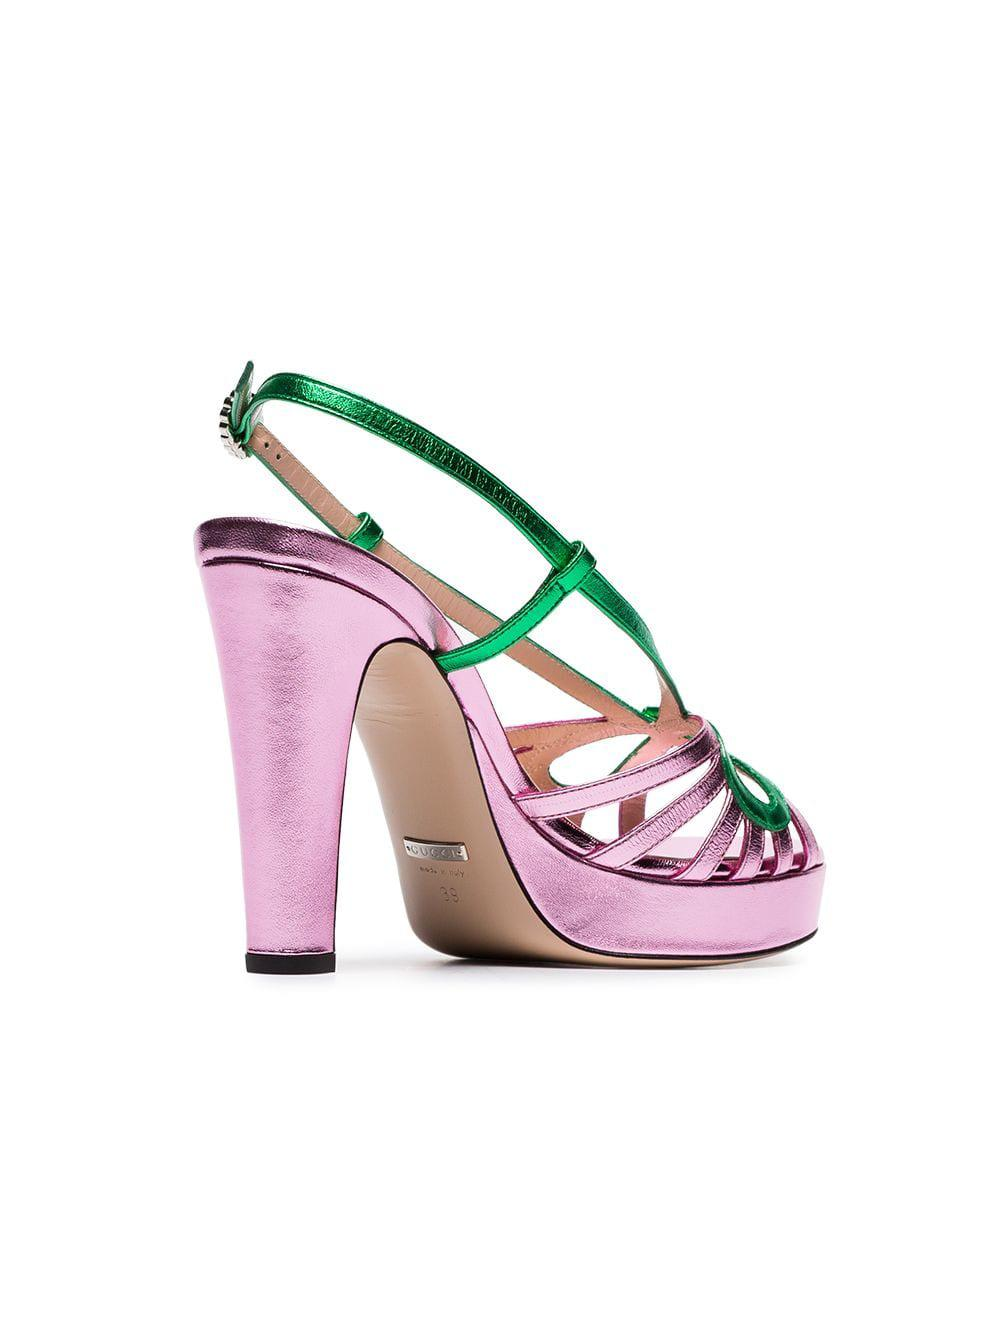 Gucci Metallic Leather Sandal In Pink Lyst